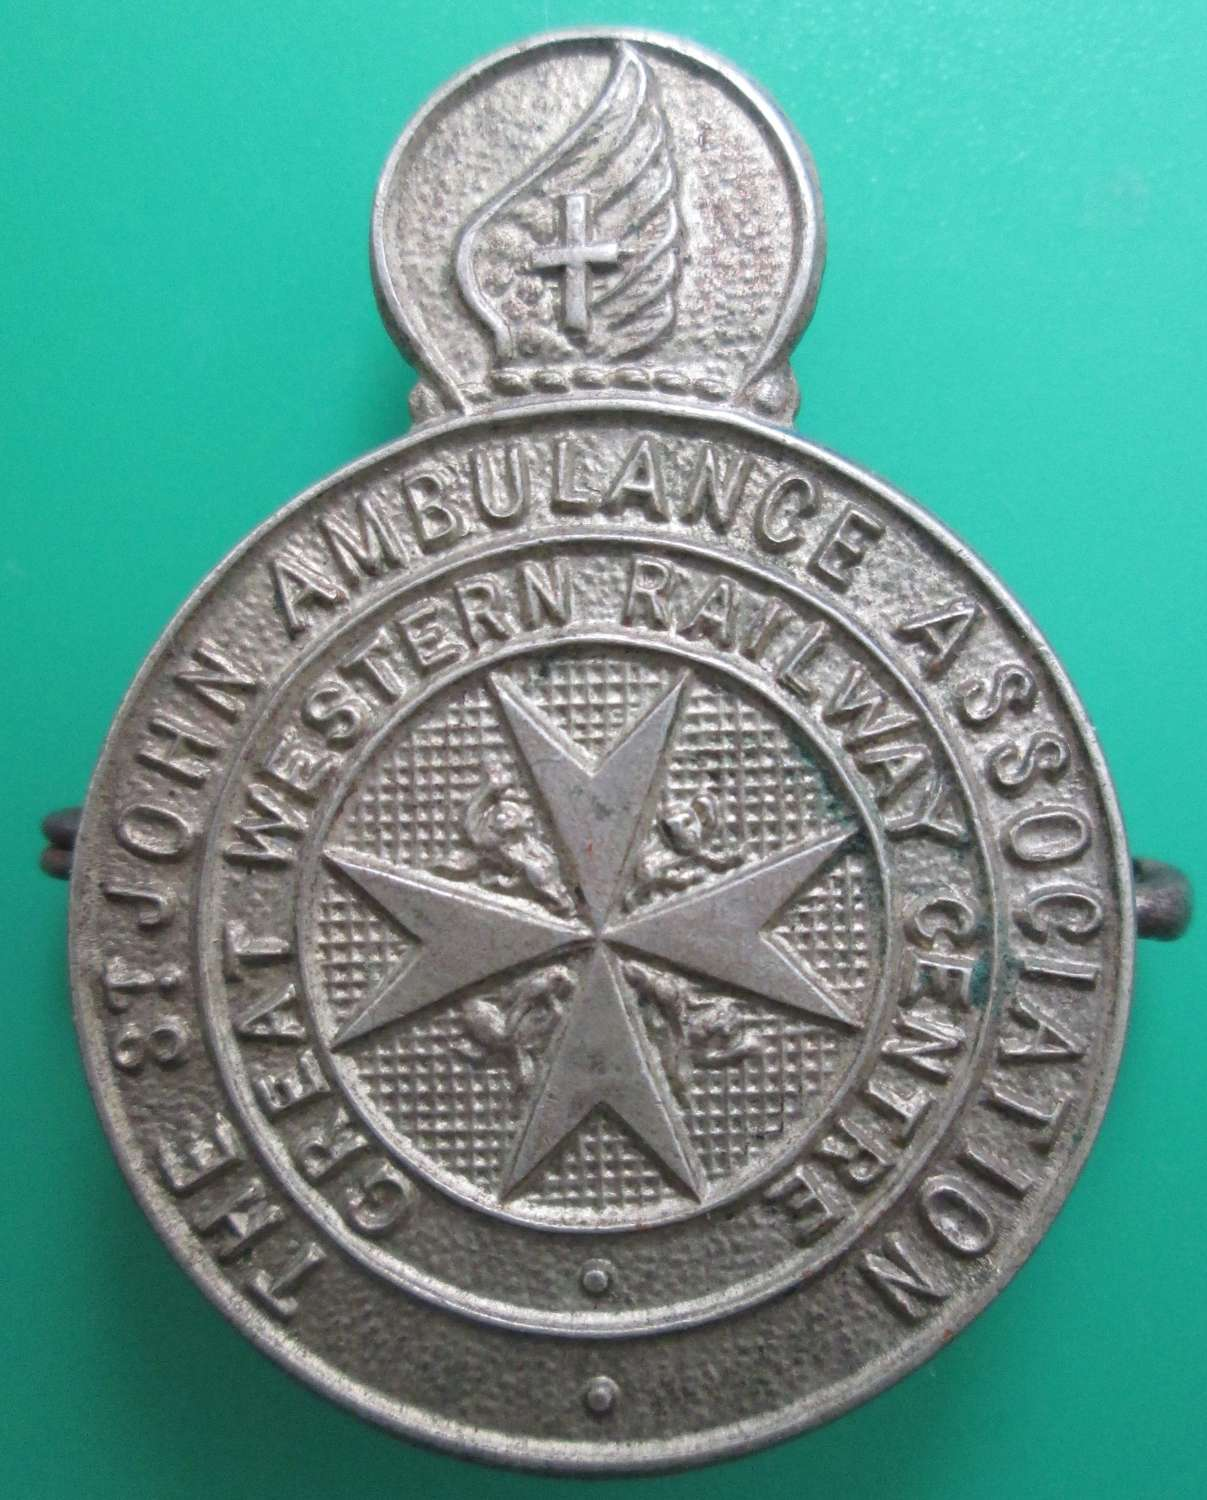 A ST JOHN AMBULANCE BADGE FOR THE GWR CENTRE